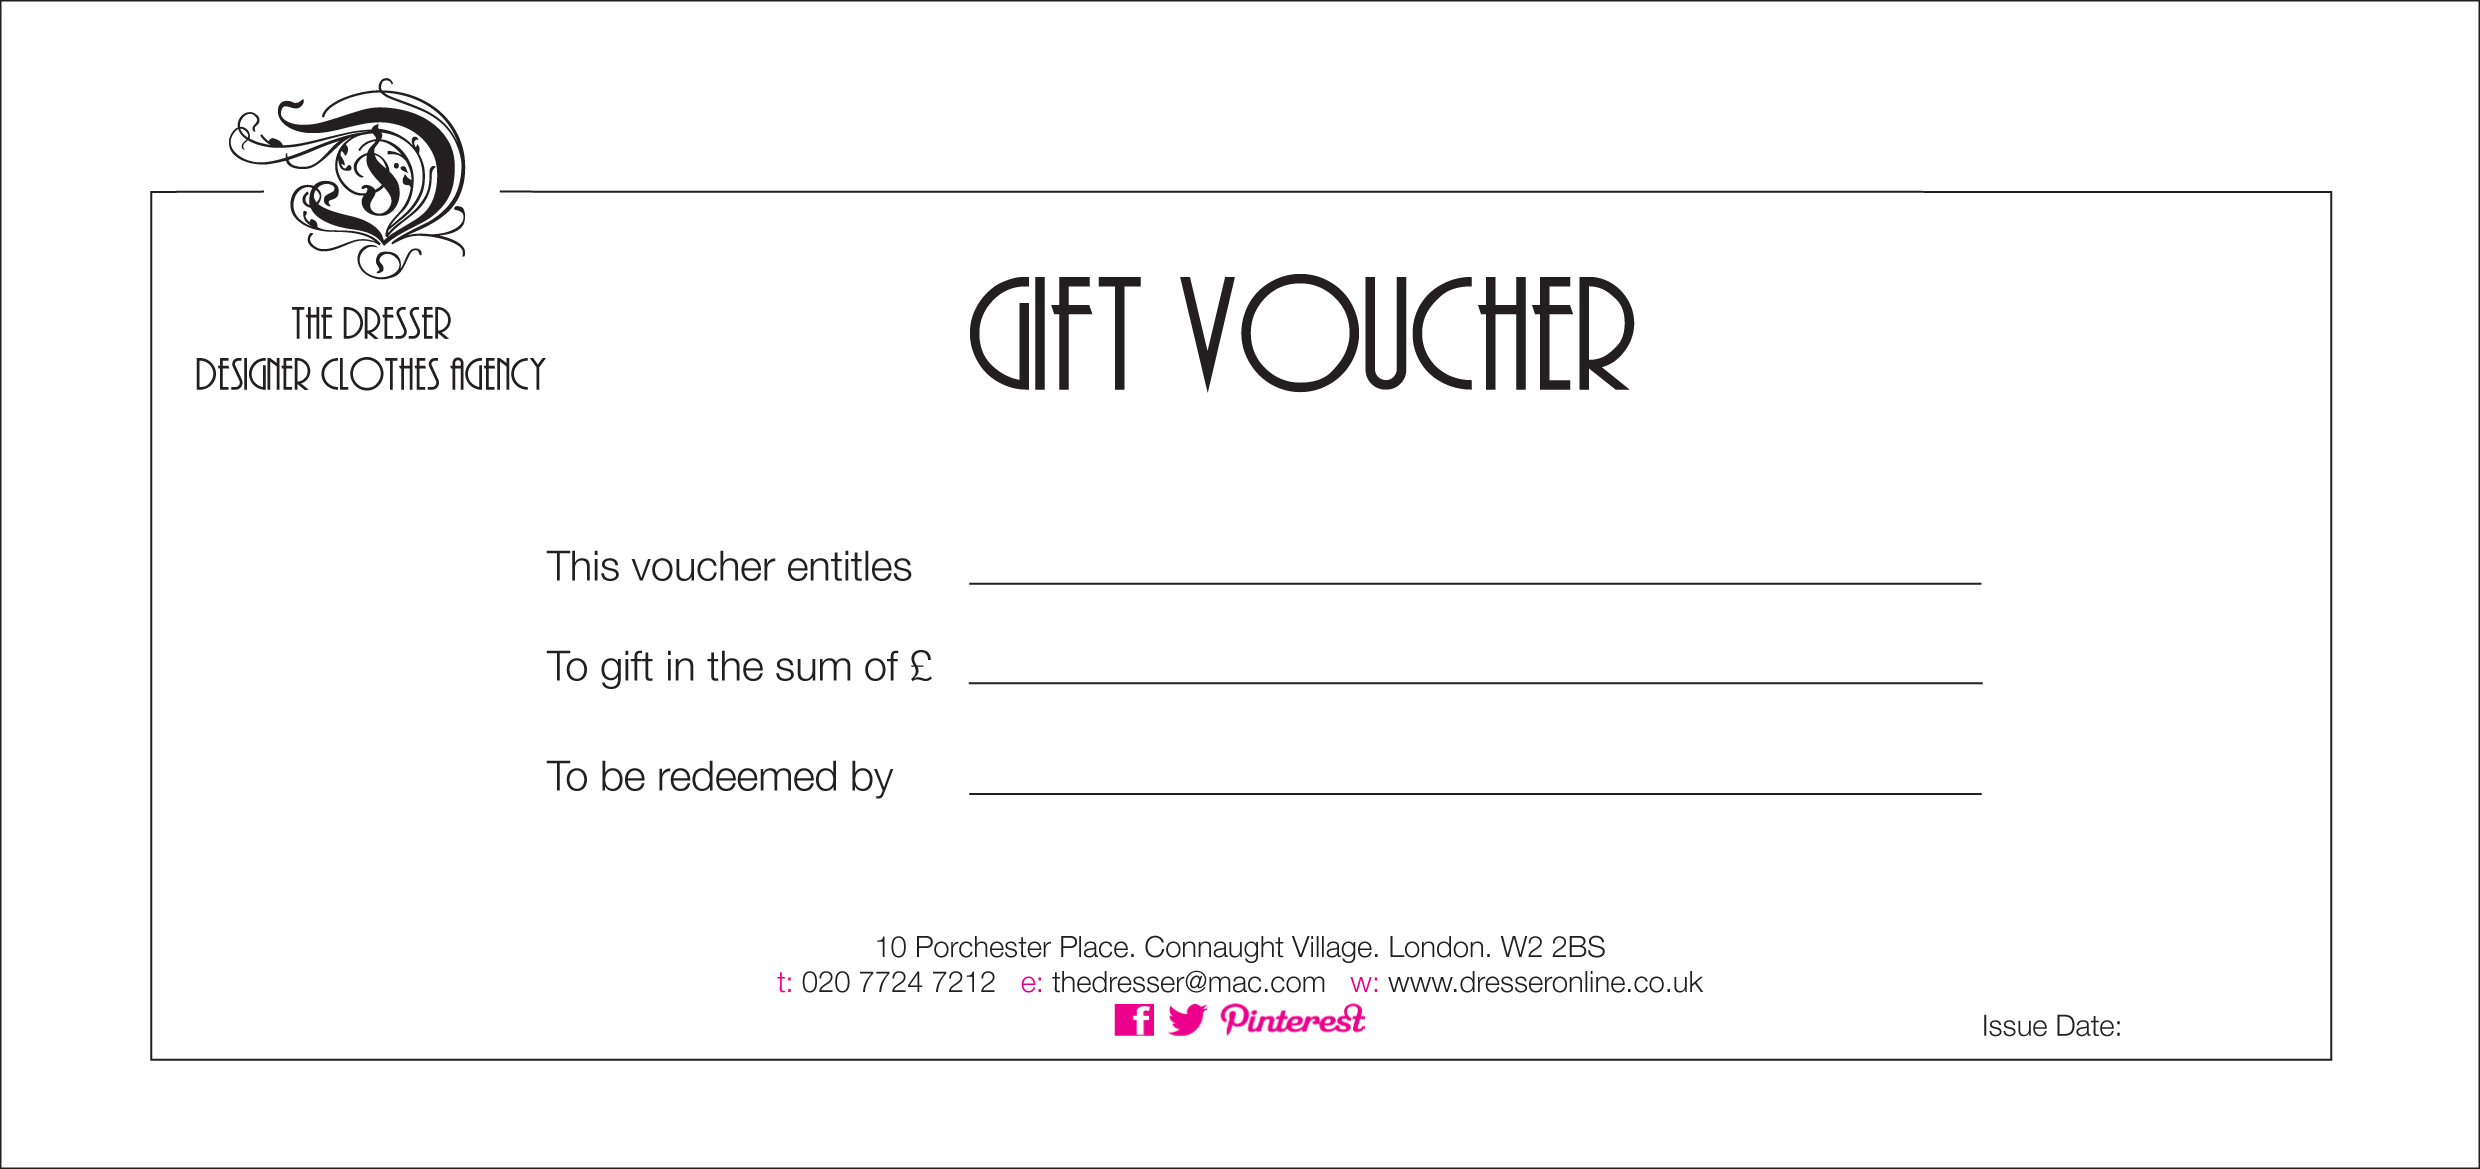 free downloadable certificate templates in word - gift voucher template word free download planner